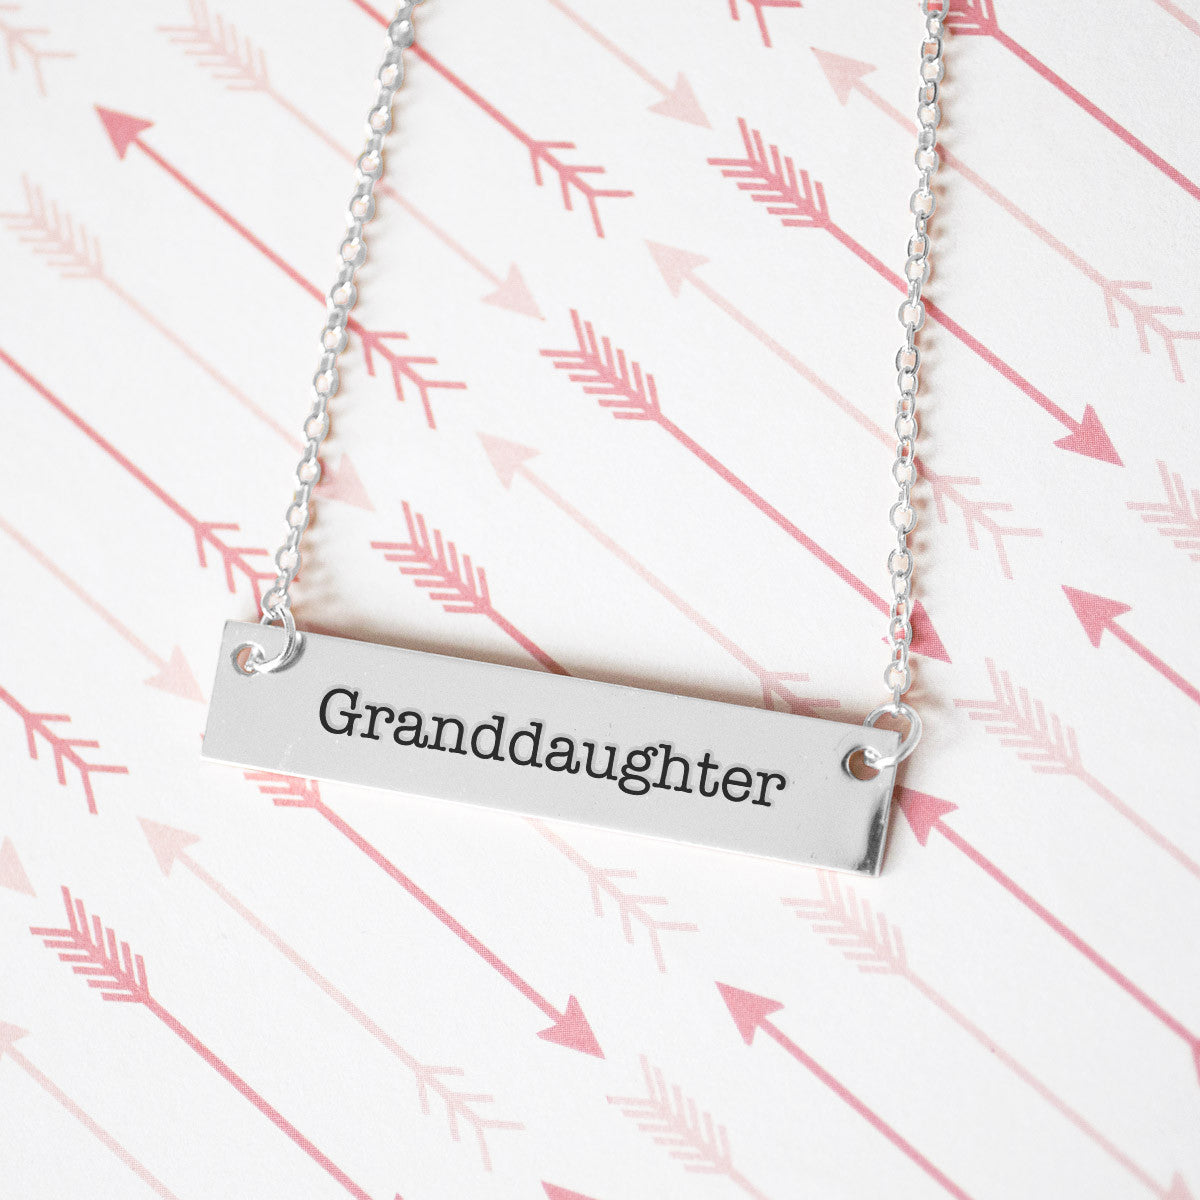 Granddaughter Gold / Silver Bar Necklace - pipercleo.com